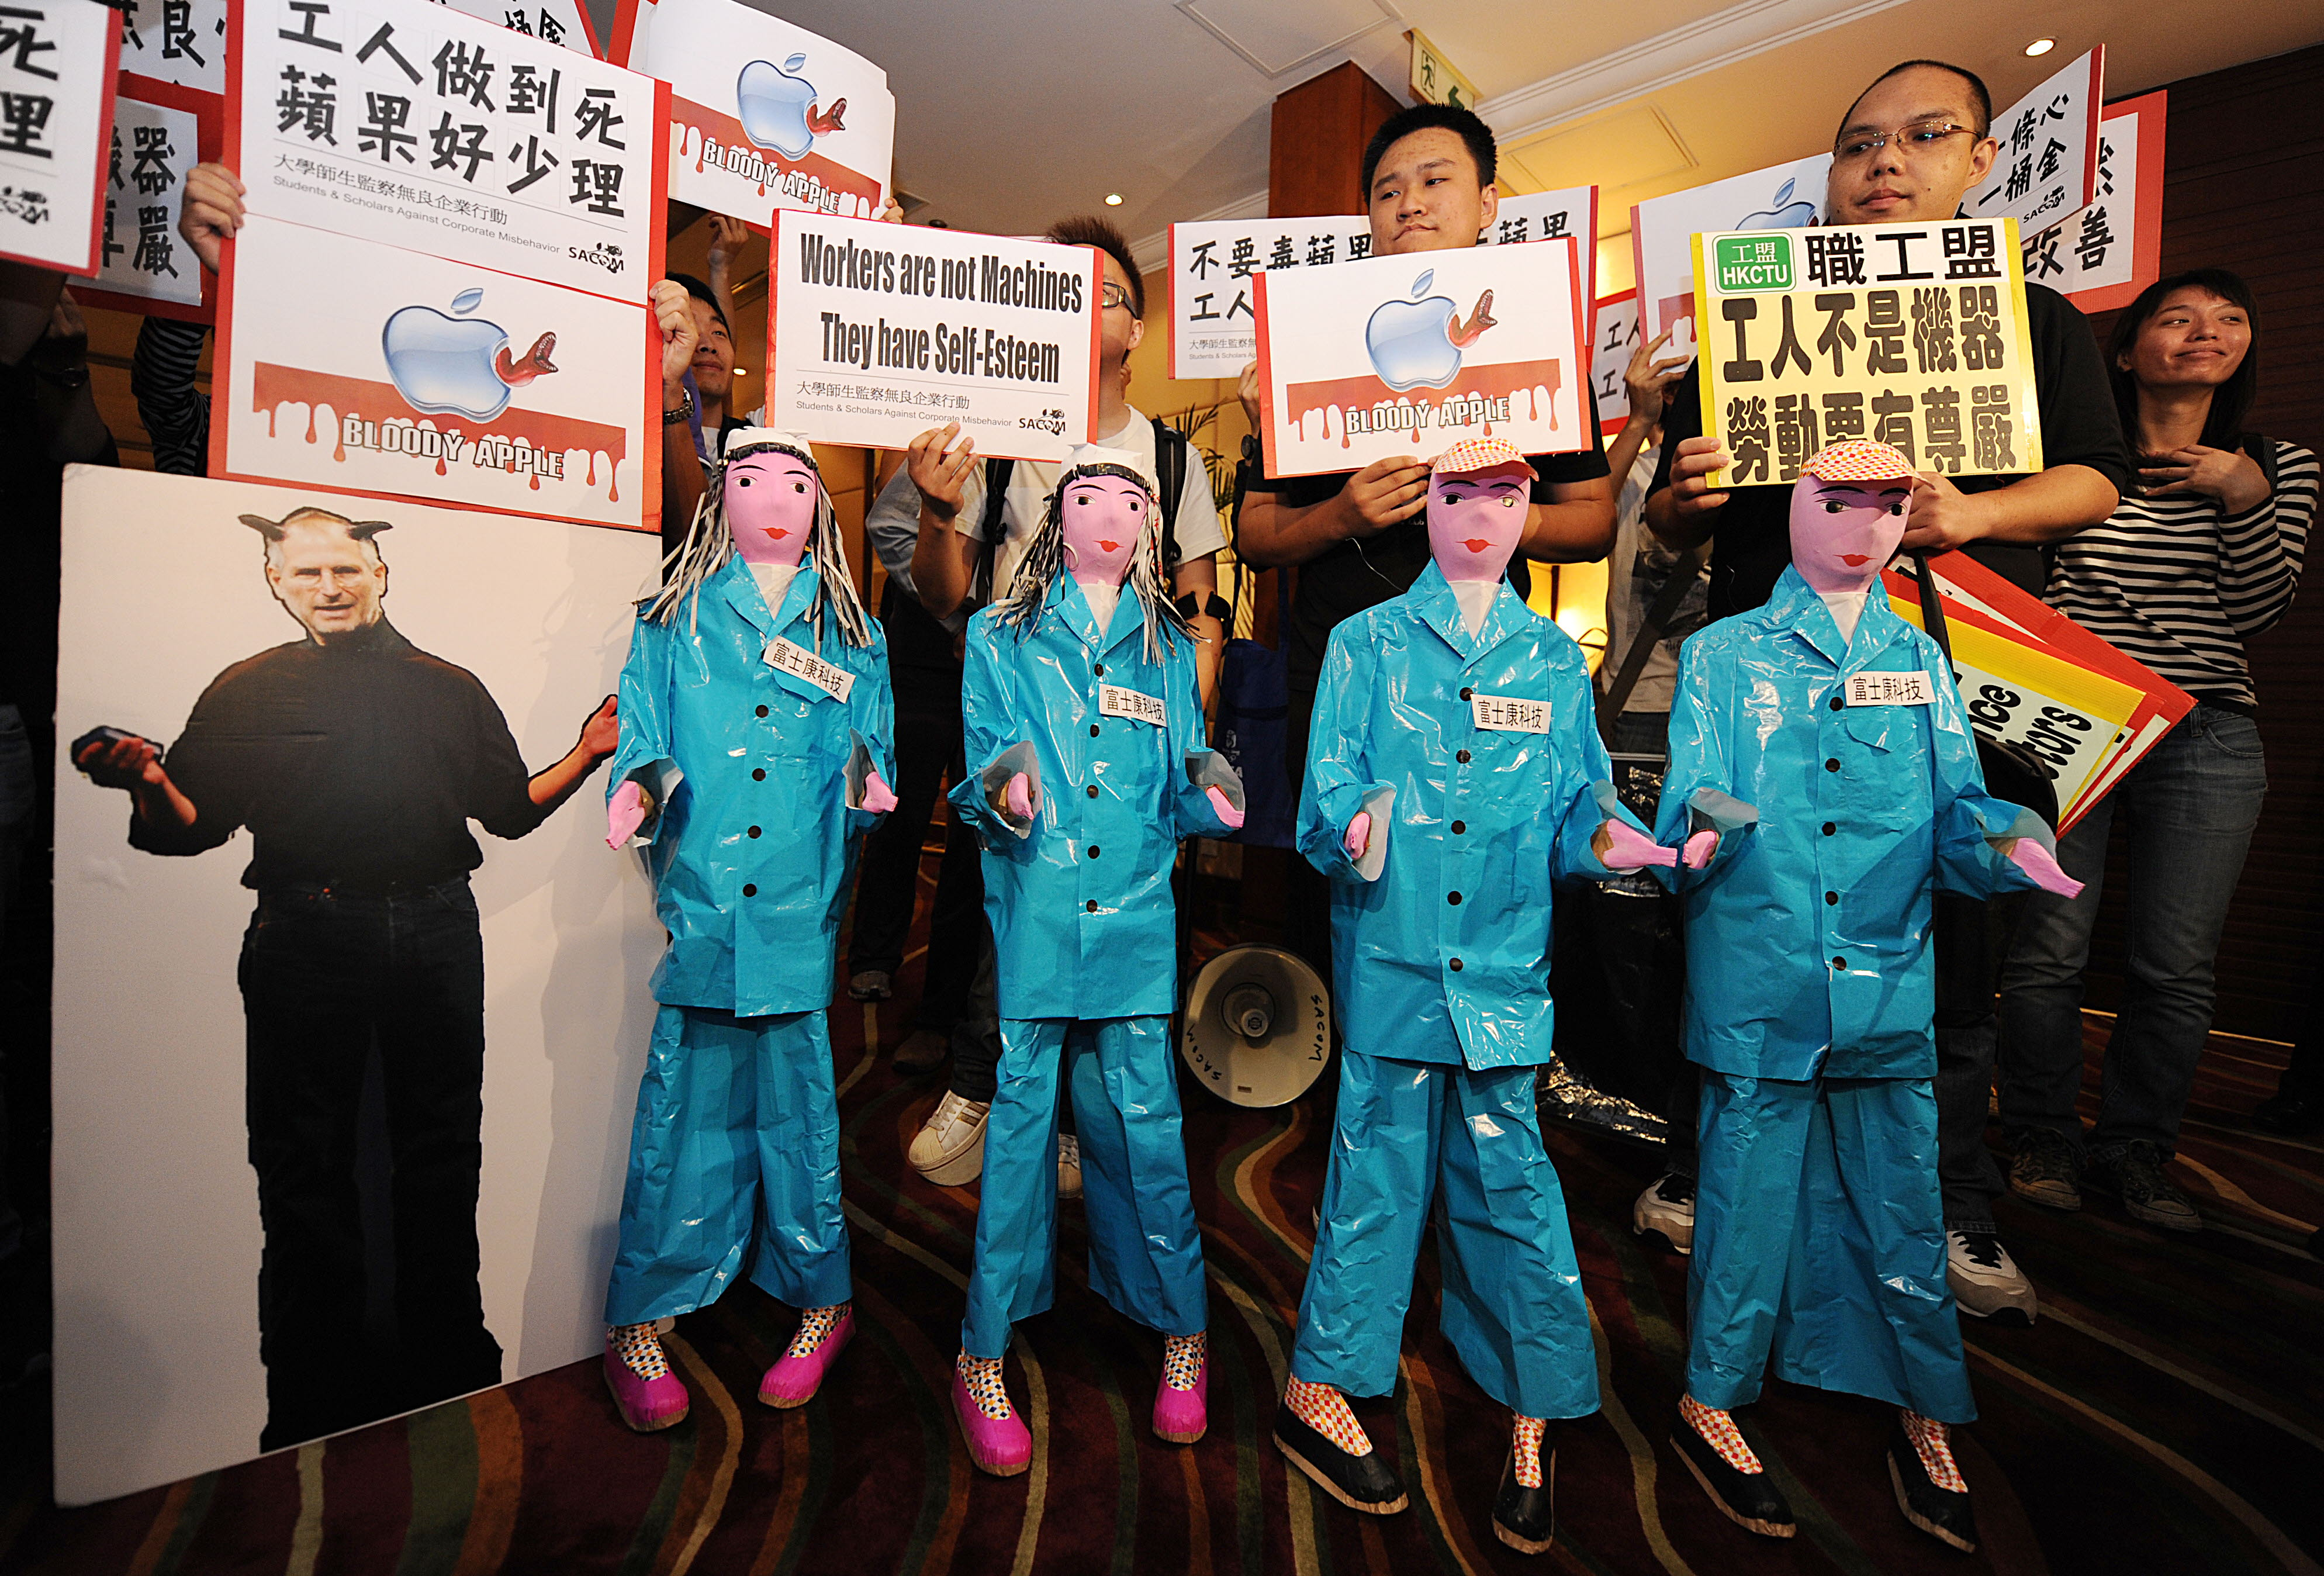 Students protest with model effigies of workers who have committed suicide at Foxconn in China during the companies' AGM in Hong Kong on June 8, 2010. (Photo: CLARKE/AFP/Getty Images)